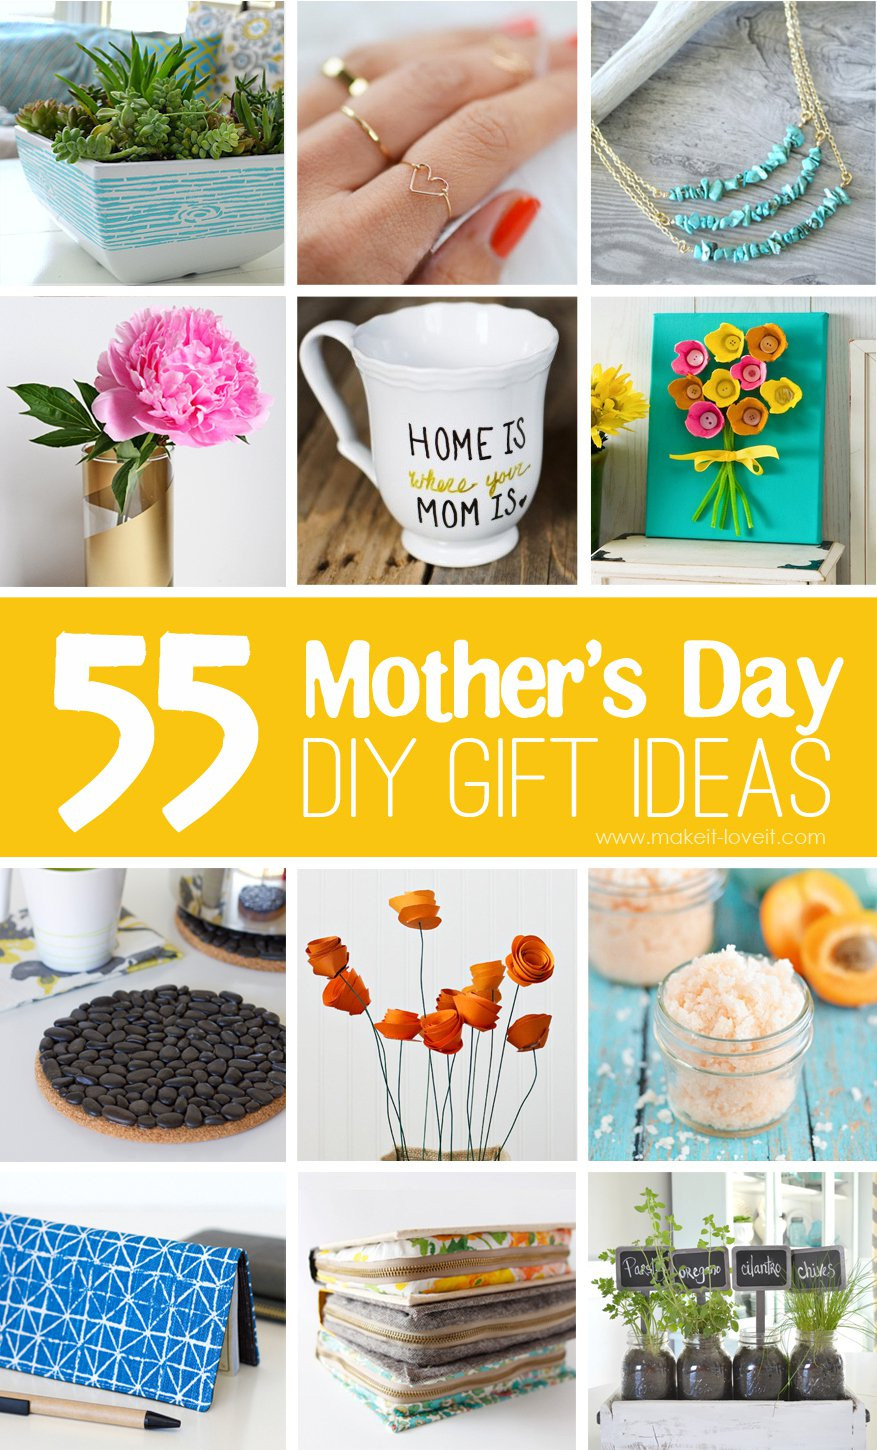 Best ideas about Mother Day Gifts DIY . Save or Pin 40 Homemade Mother s Day Gift Ideas Now.